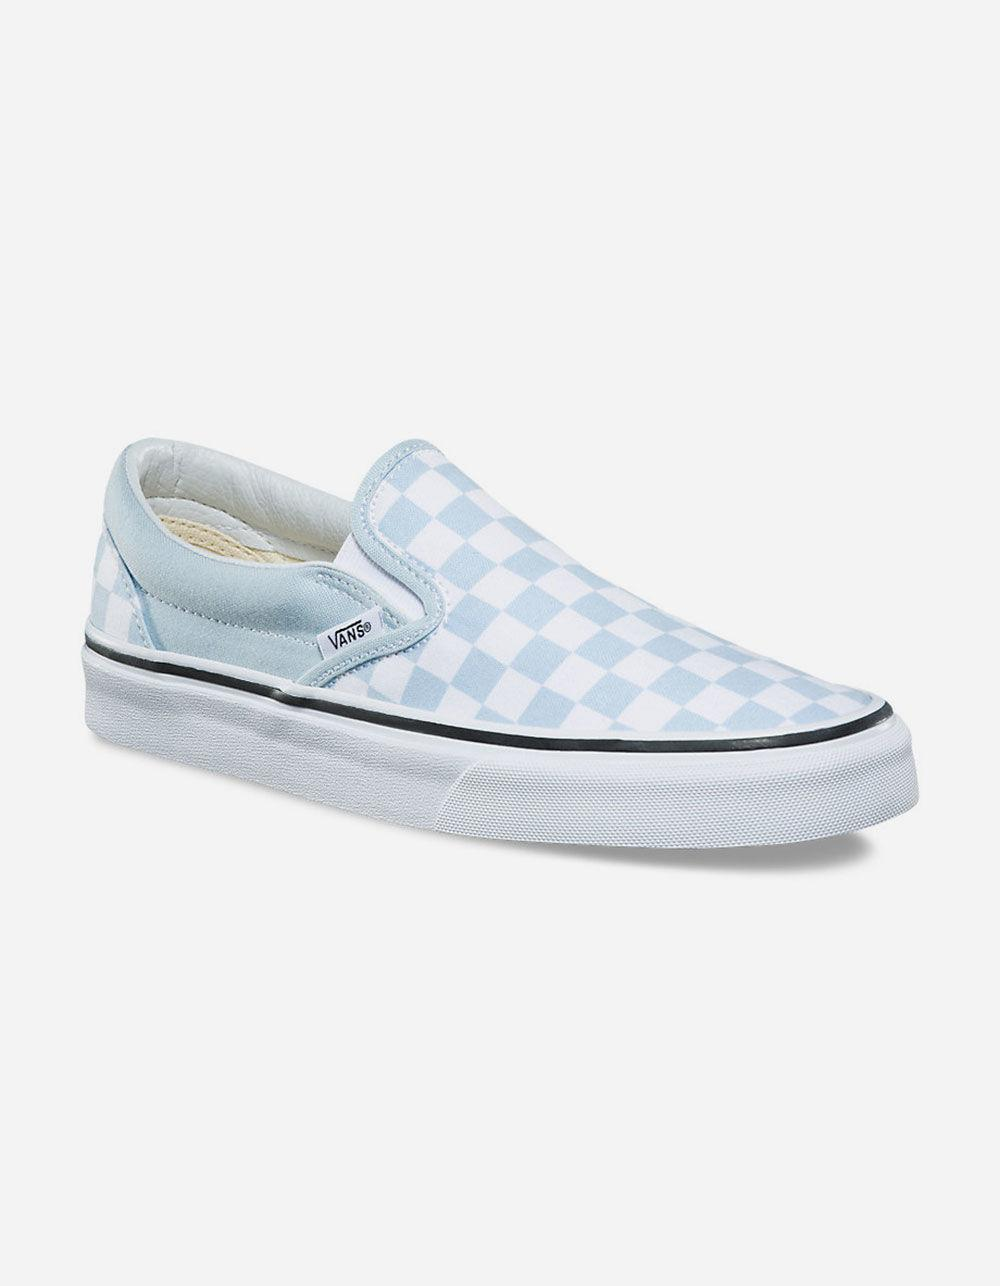 a59d37c780d Lyst - Vans Checkerboard Baby Blue Womens Slip-on Shoes in Blue